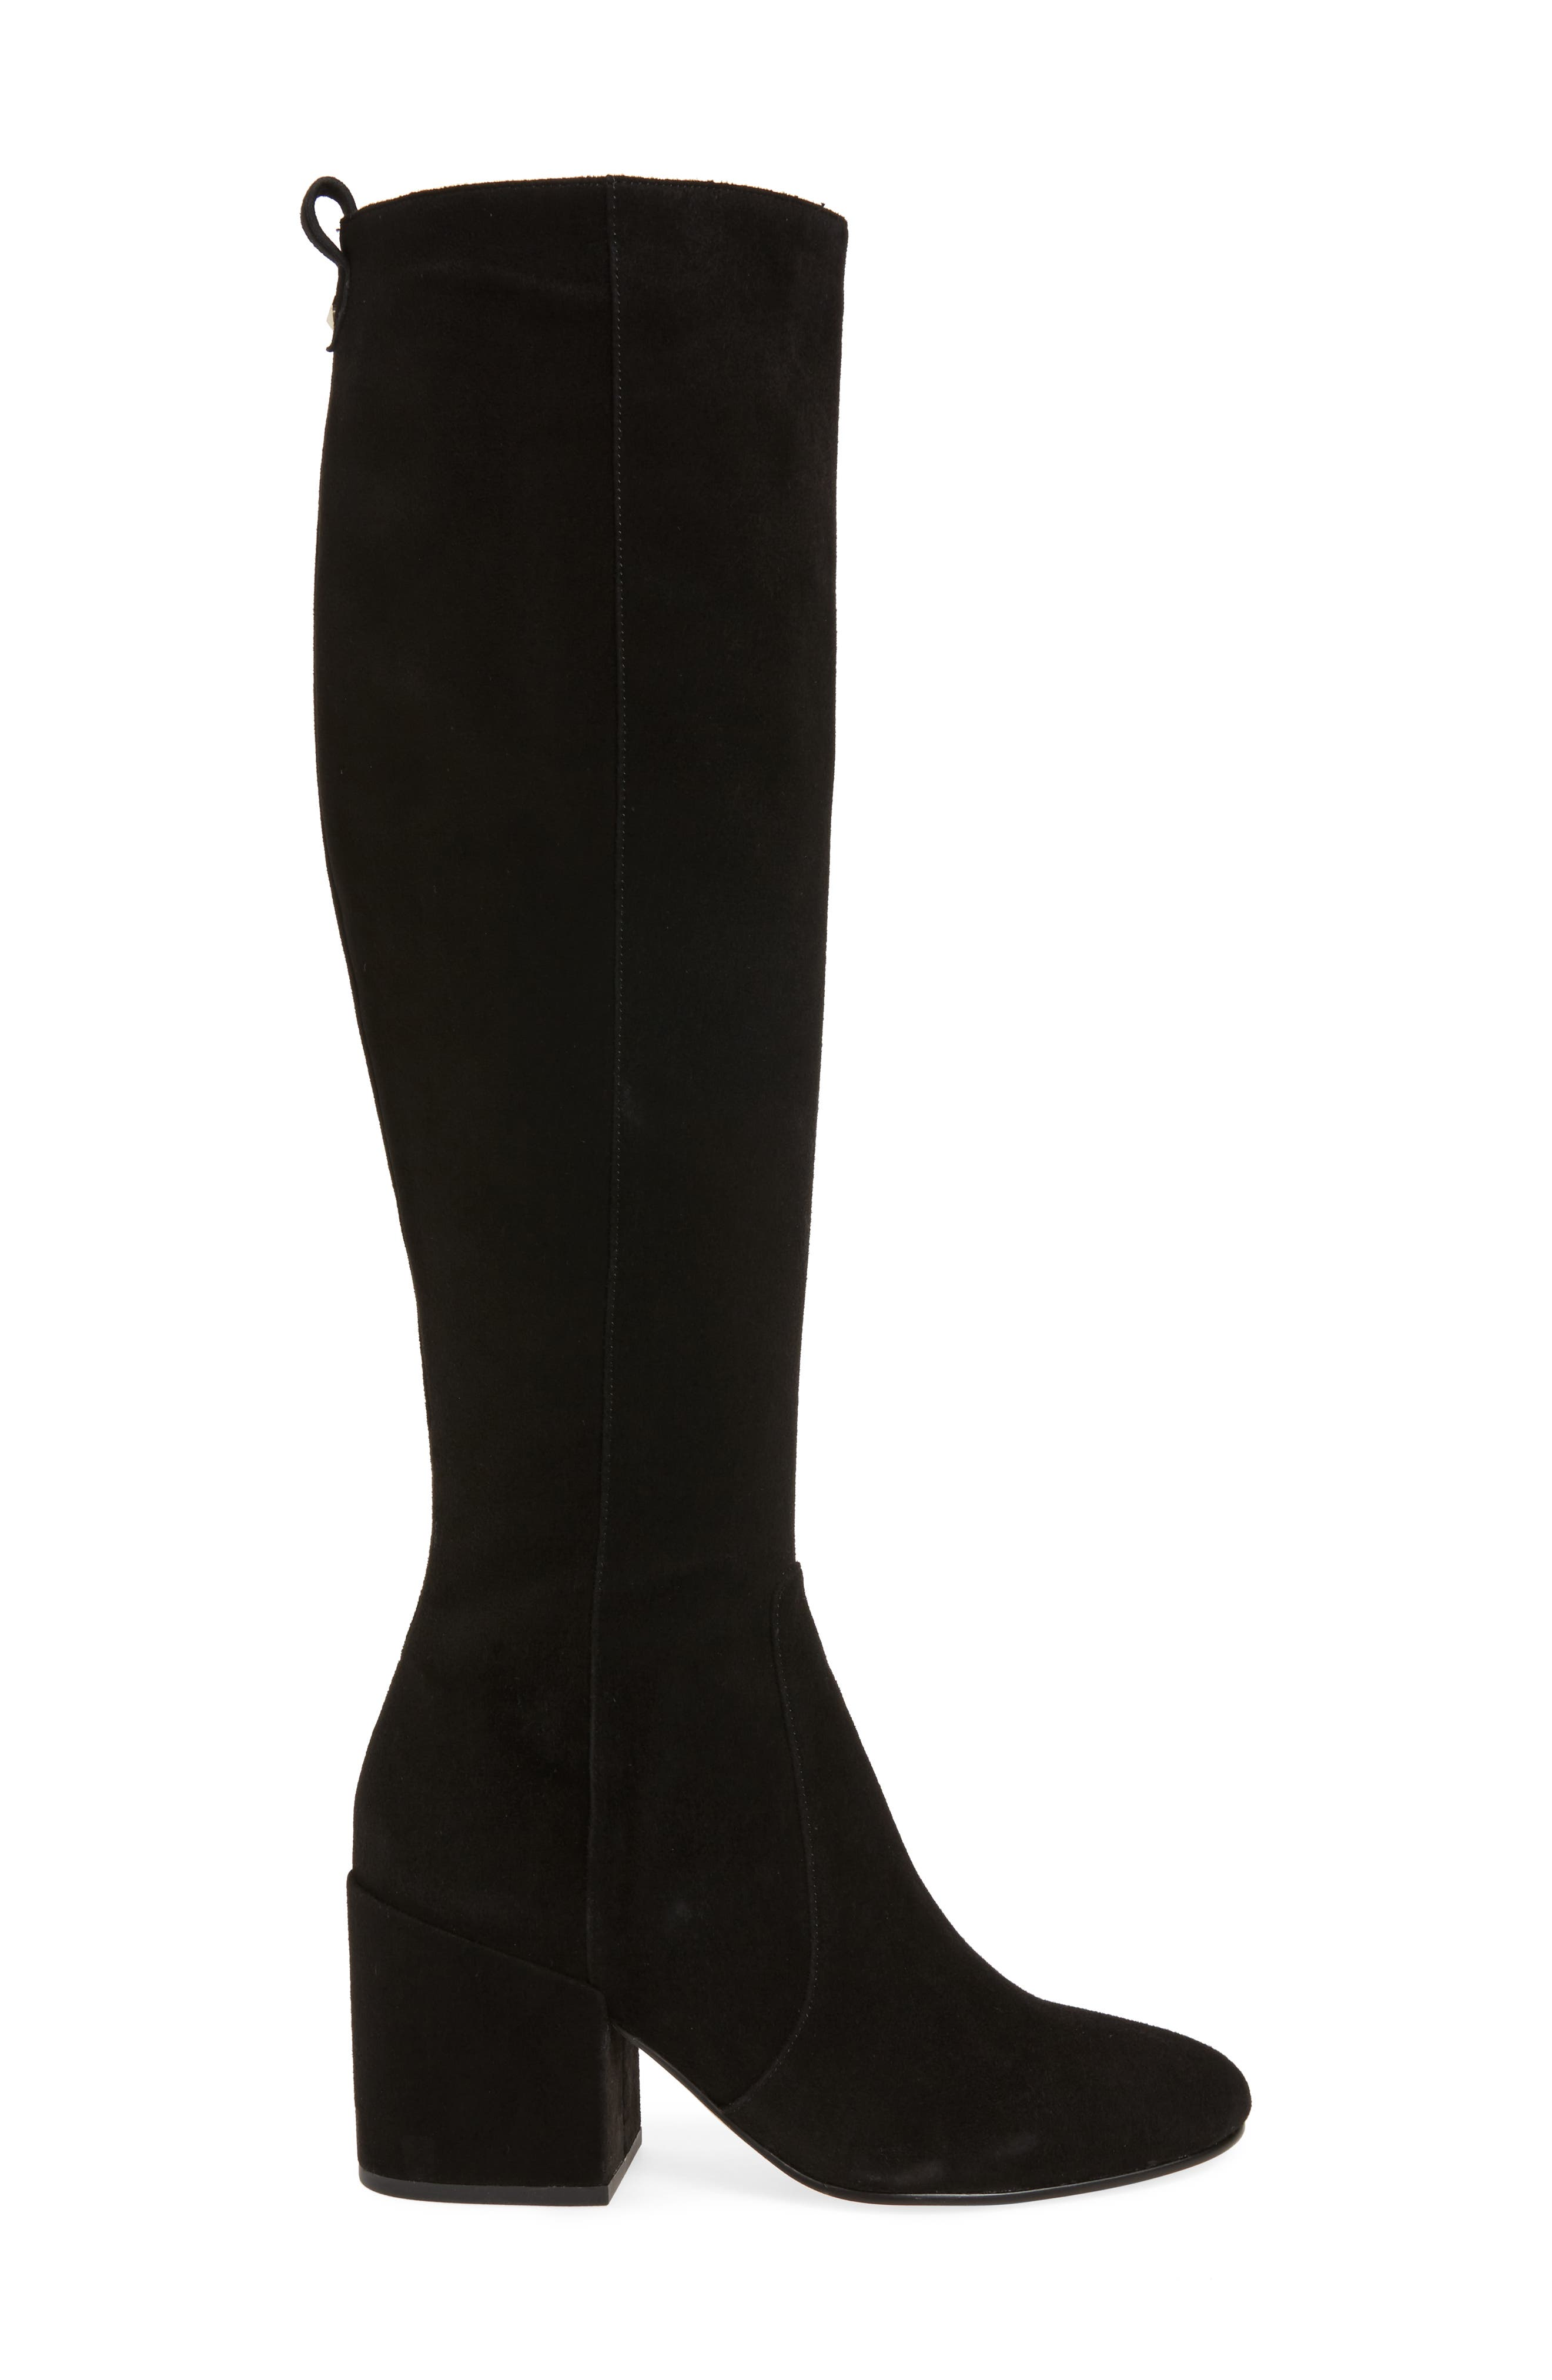 Thora Knee High Boot,                             Alternate thumbnail 3, color,                             Black Leather